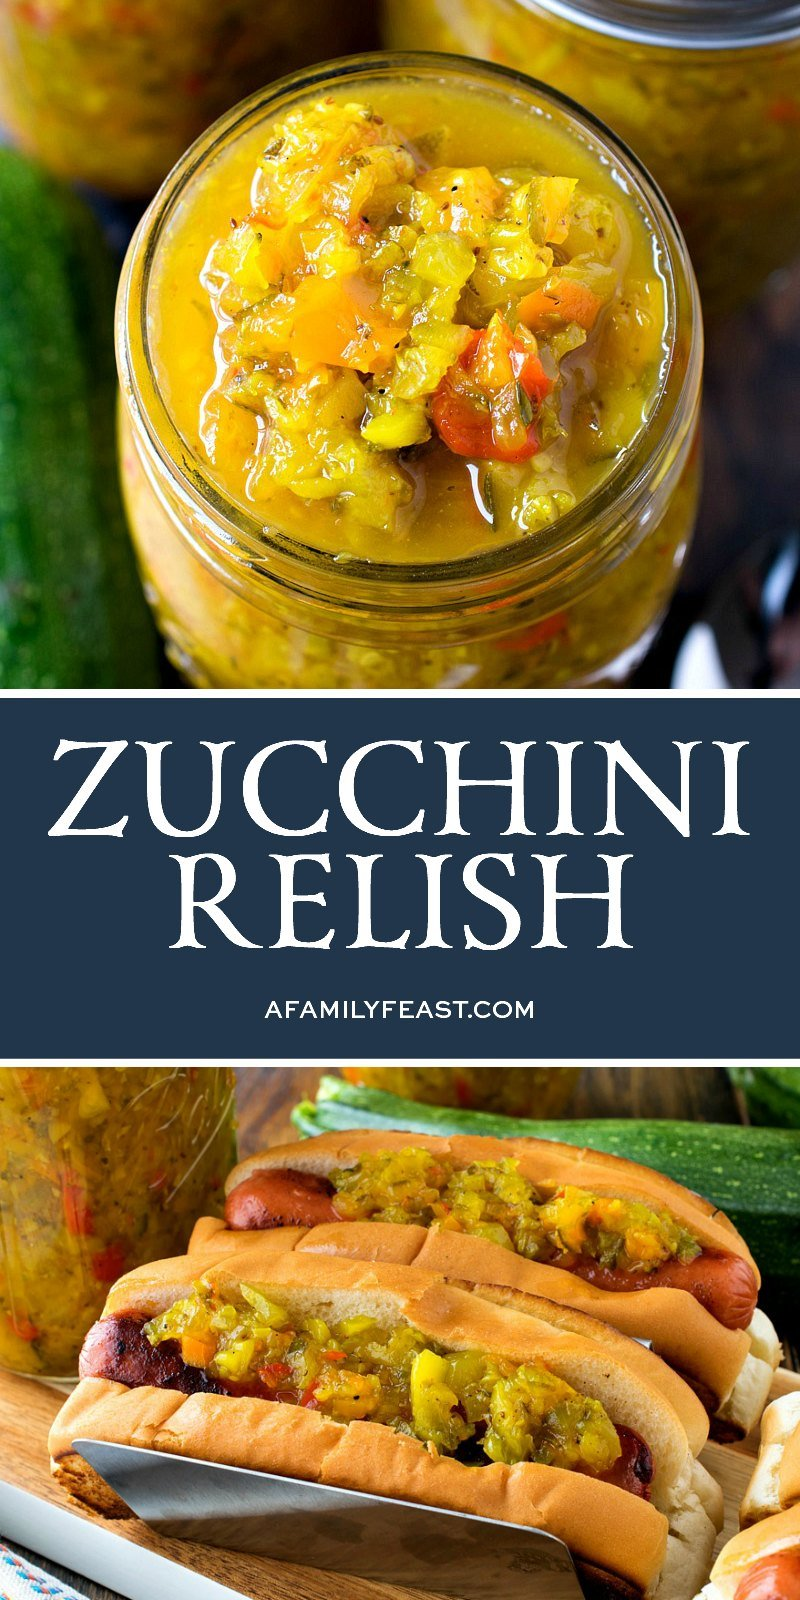 Zucchini Relish - A Family Feast